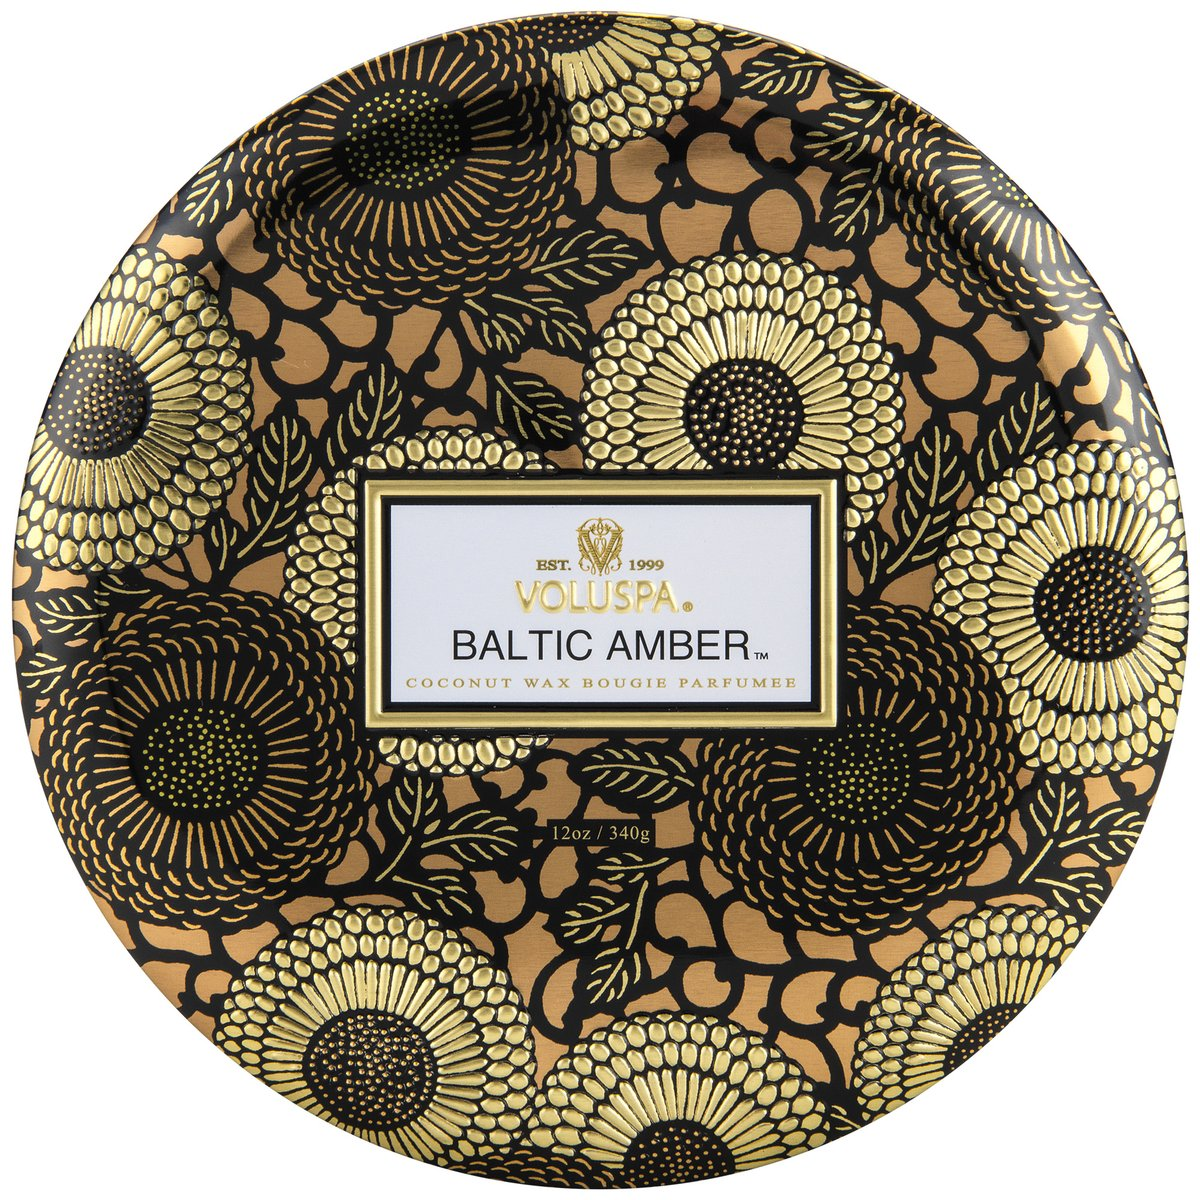 Notes of Amber Resin, Sandalwood, Vanilla Orchid. Rich jewel tones adorn this beautifully patterned metallic option, with fragrance wafting from each of its three wicks.